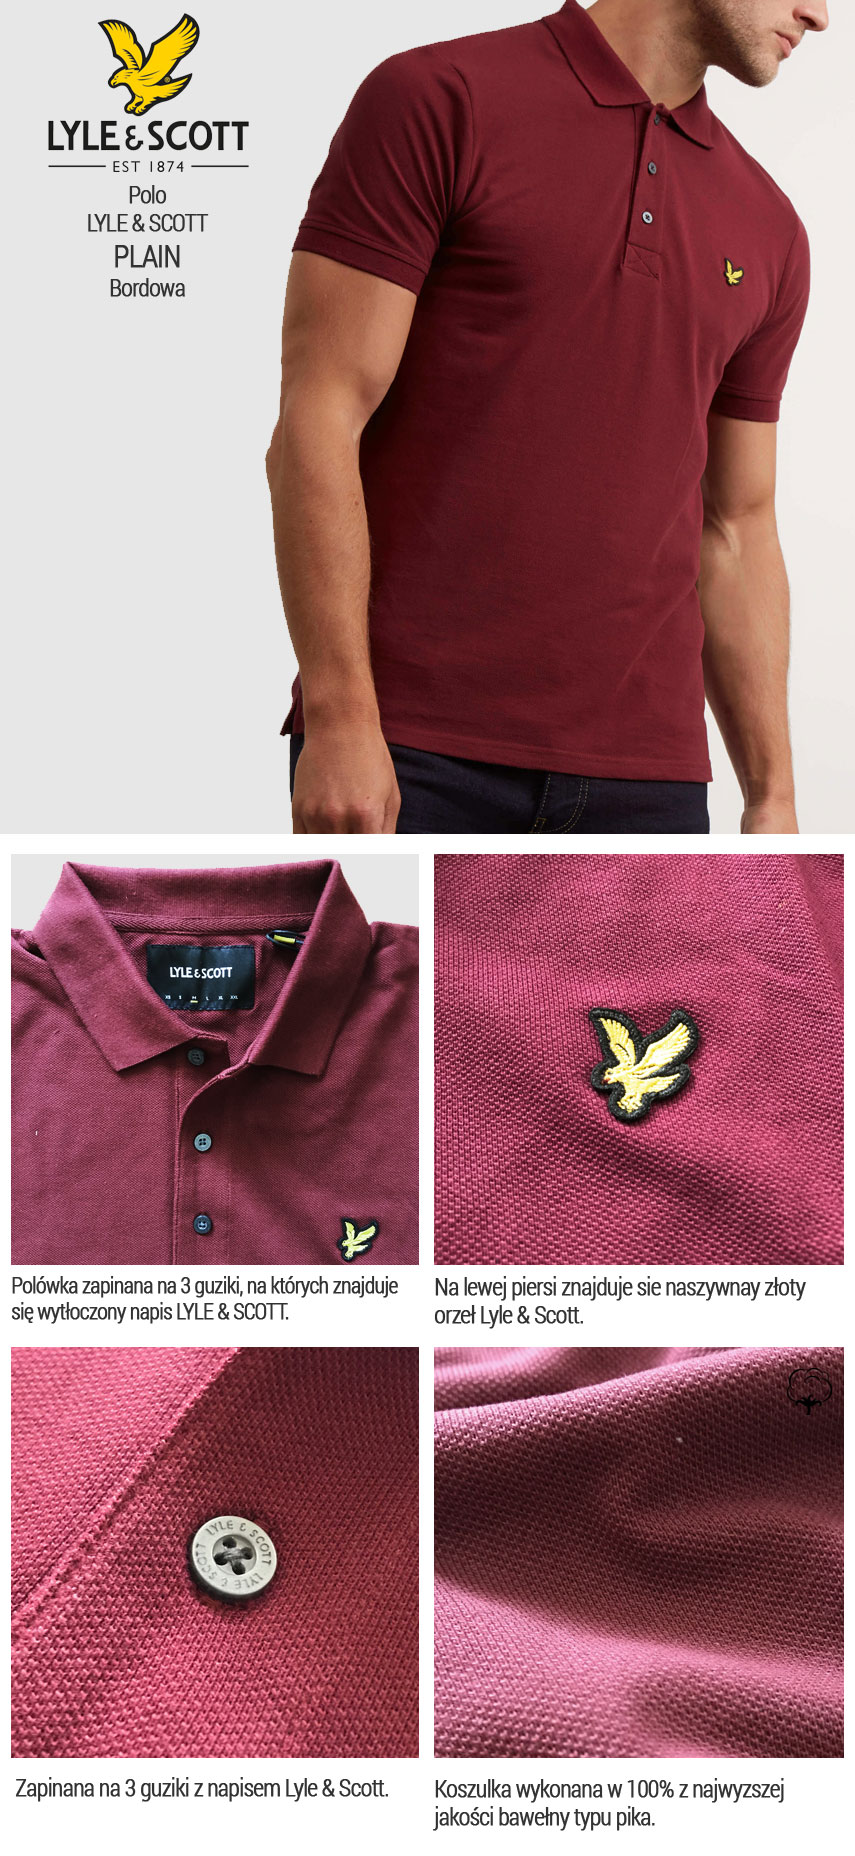 Koszulka Polo Lyle & Scott Pique Bordowa